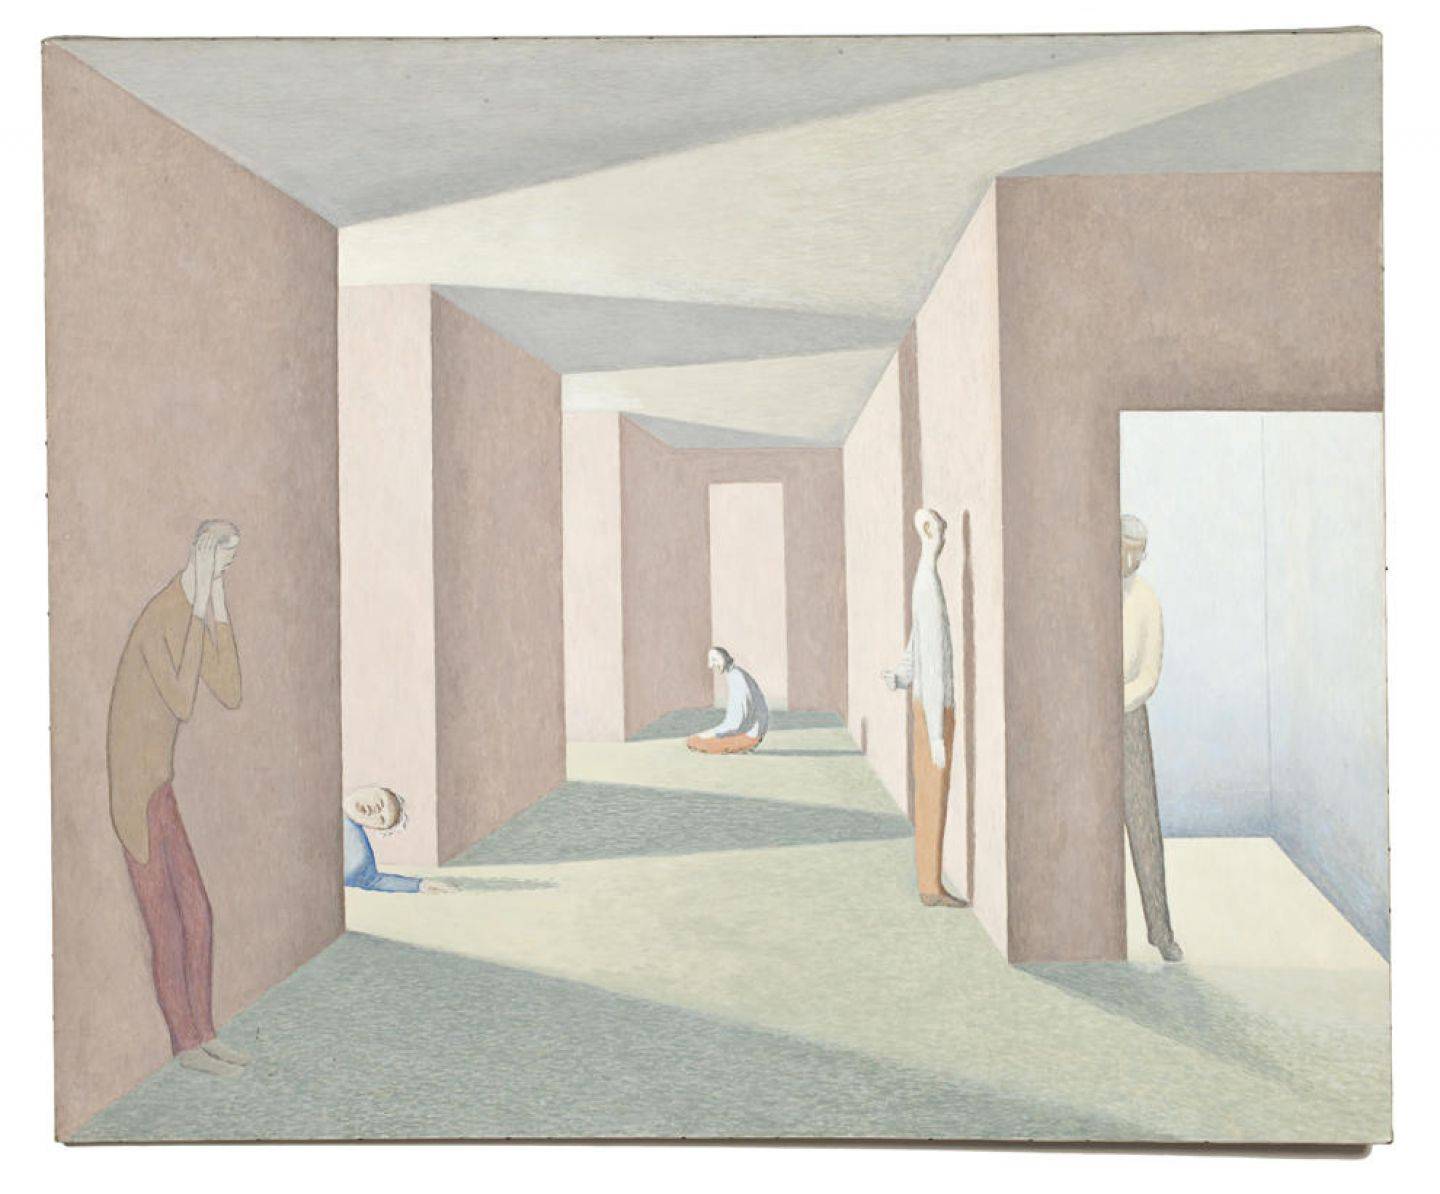 A painting of a hallway in muted colors. Light pours in from doorways/openings into the hallway, casting shadows in geometric patterns. There are flattened human figures, some leaning against walls, one kneeling, and one lying down.